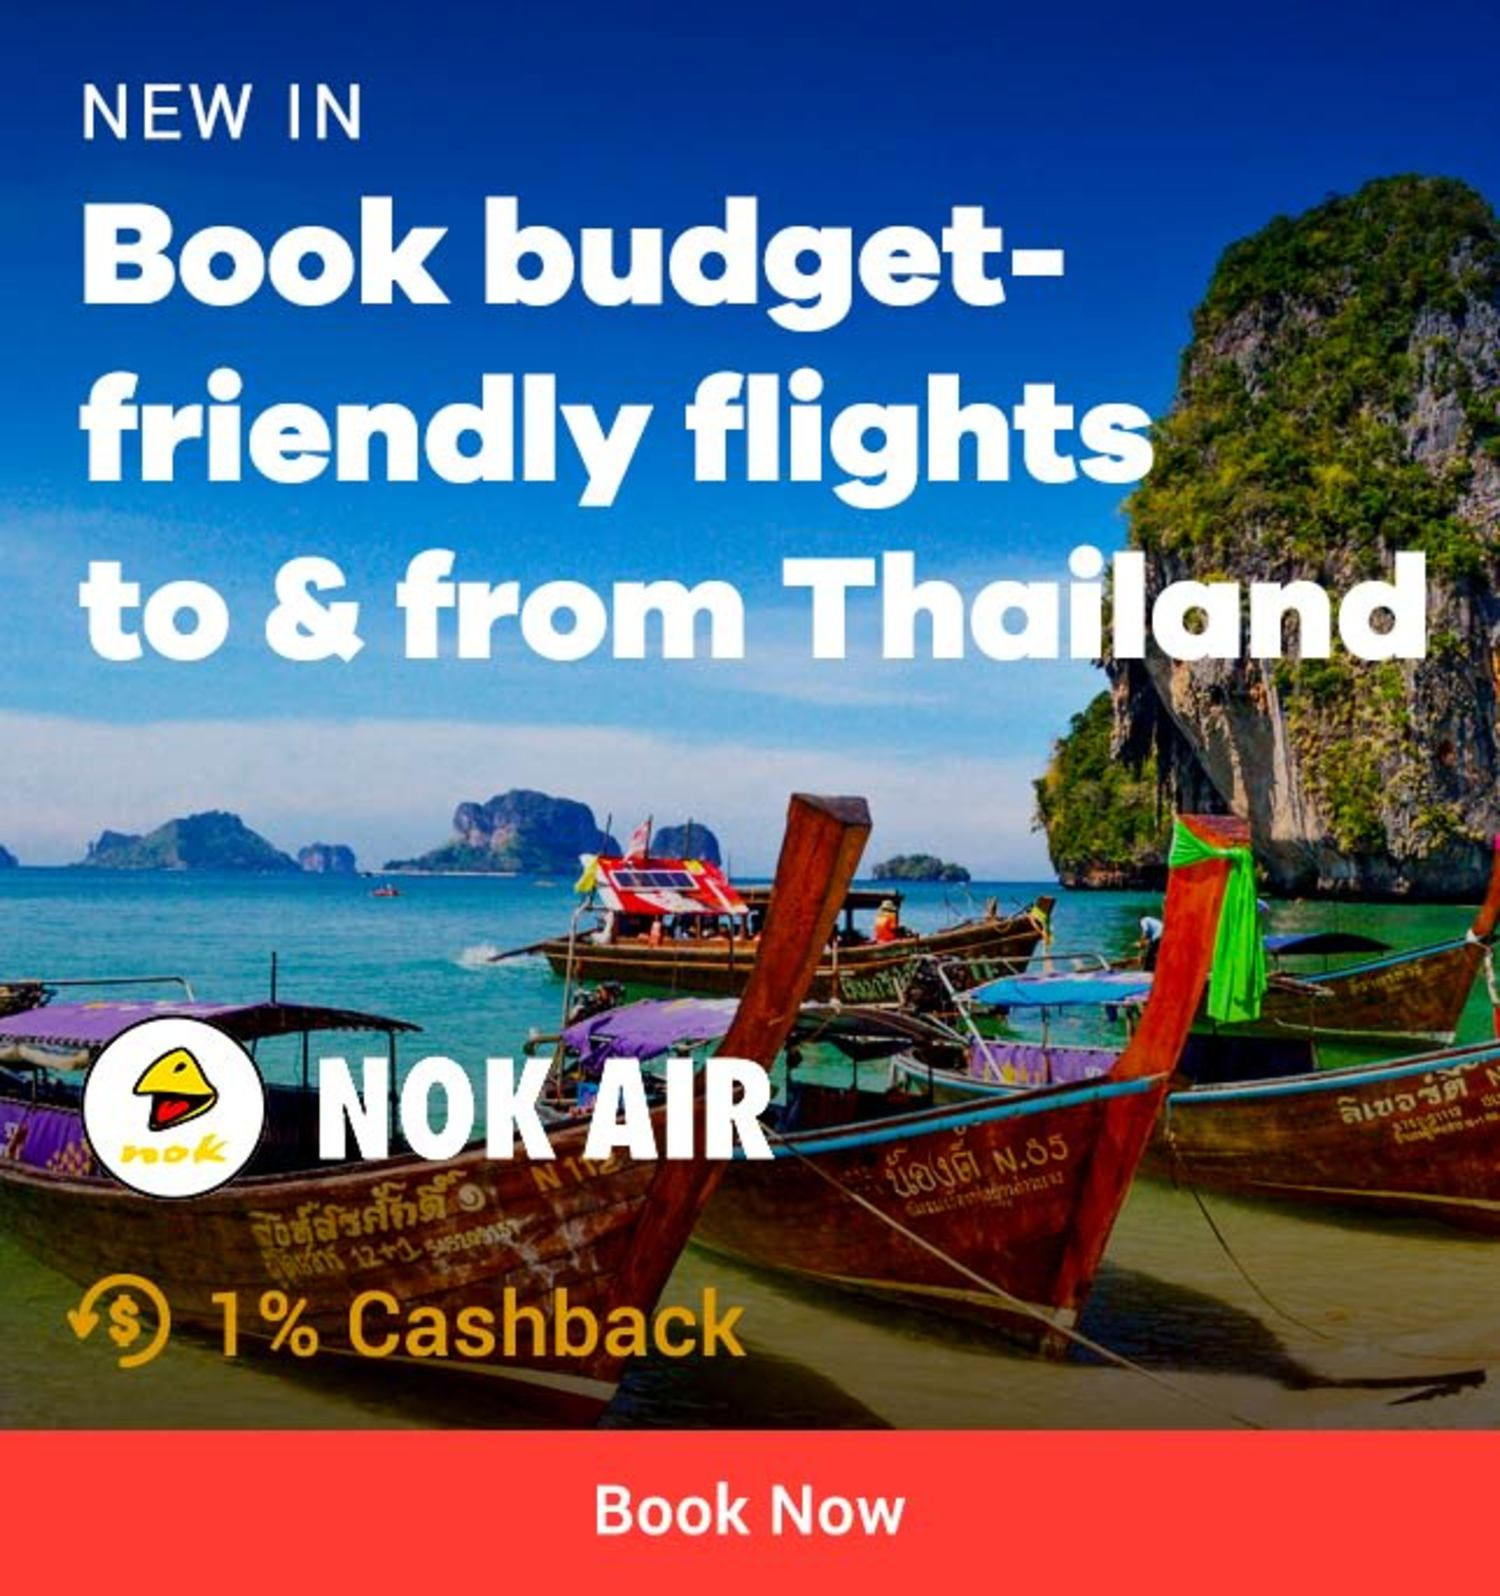 Nok Air: Book budget-friendly to & from Thailand